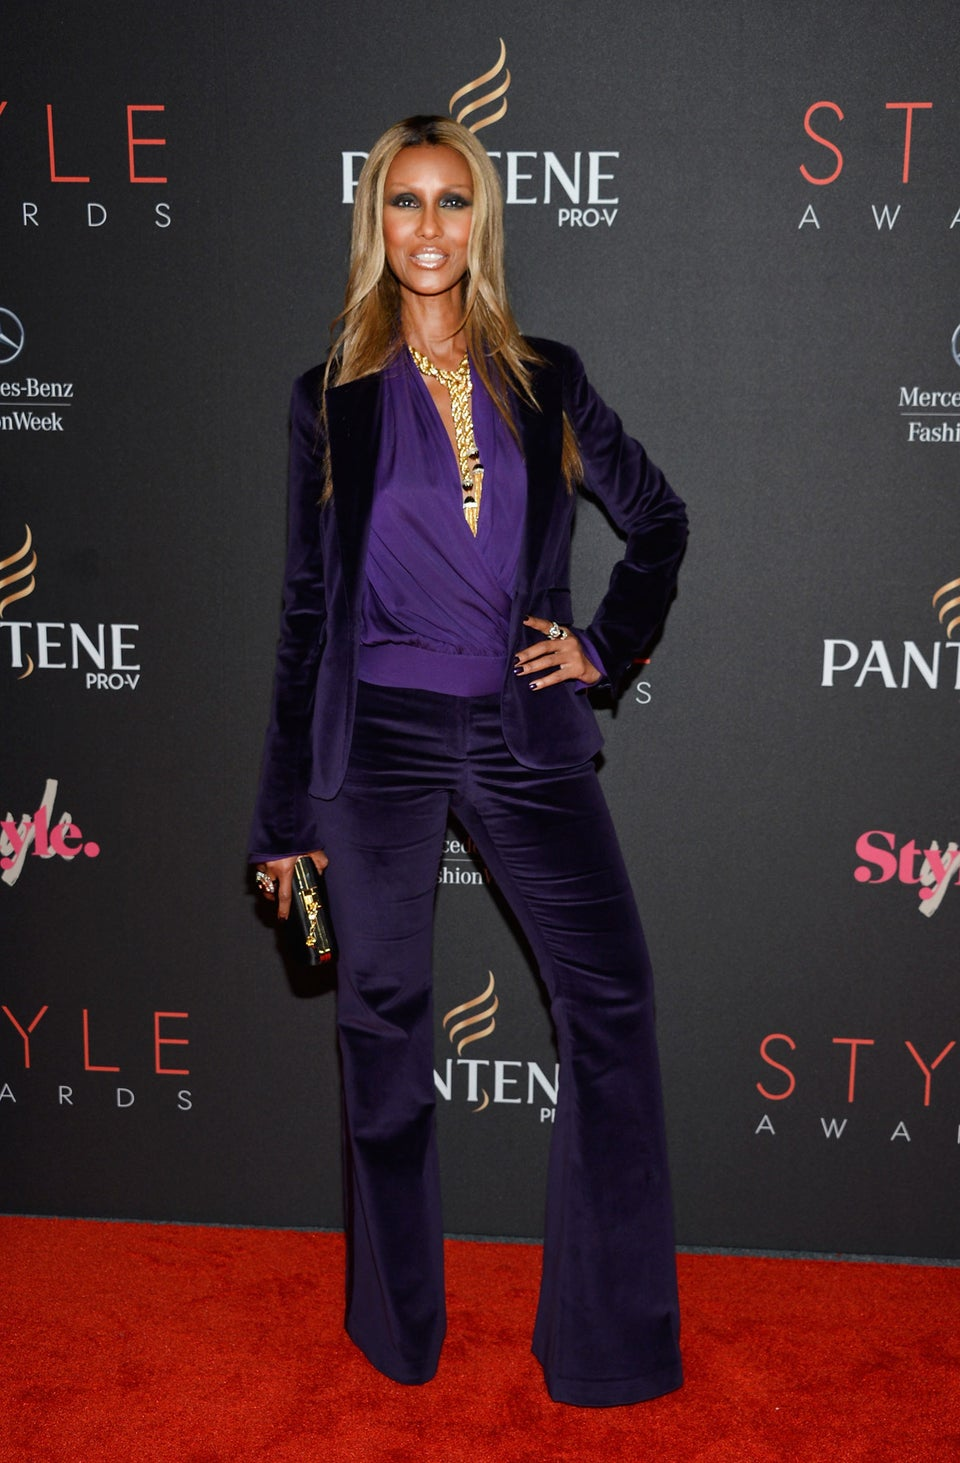 Iman Merges Travel, Fashion and Beauty With New Website